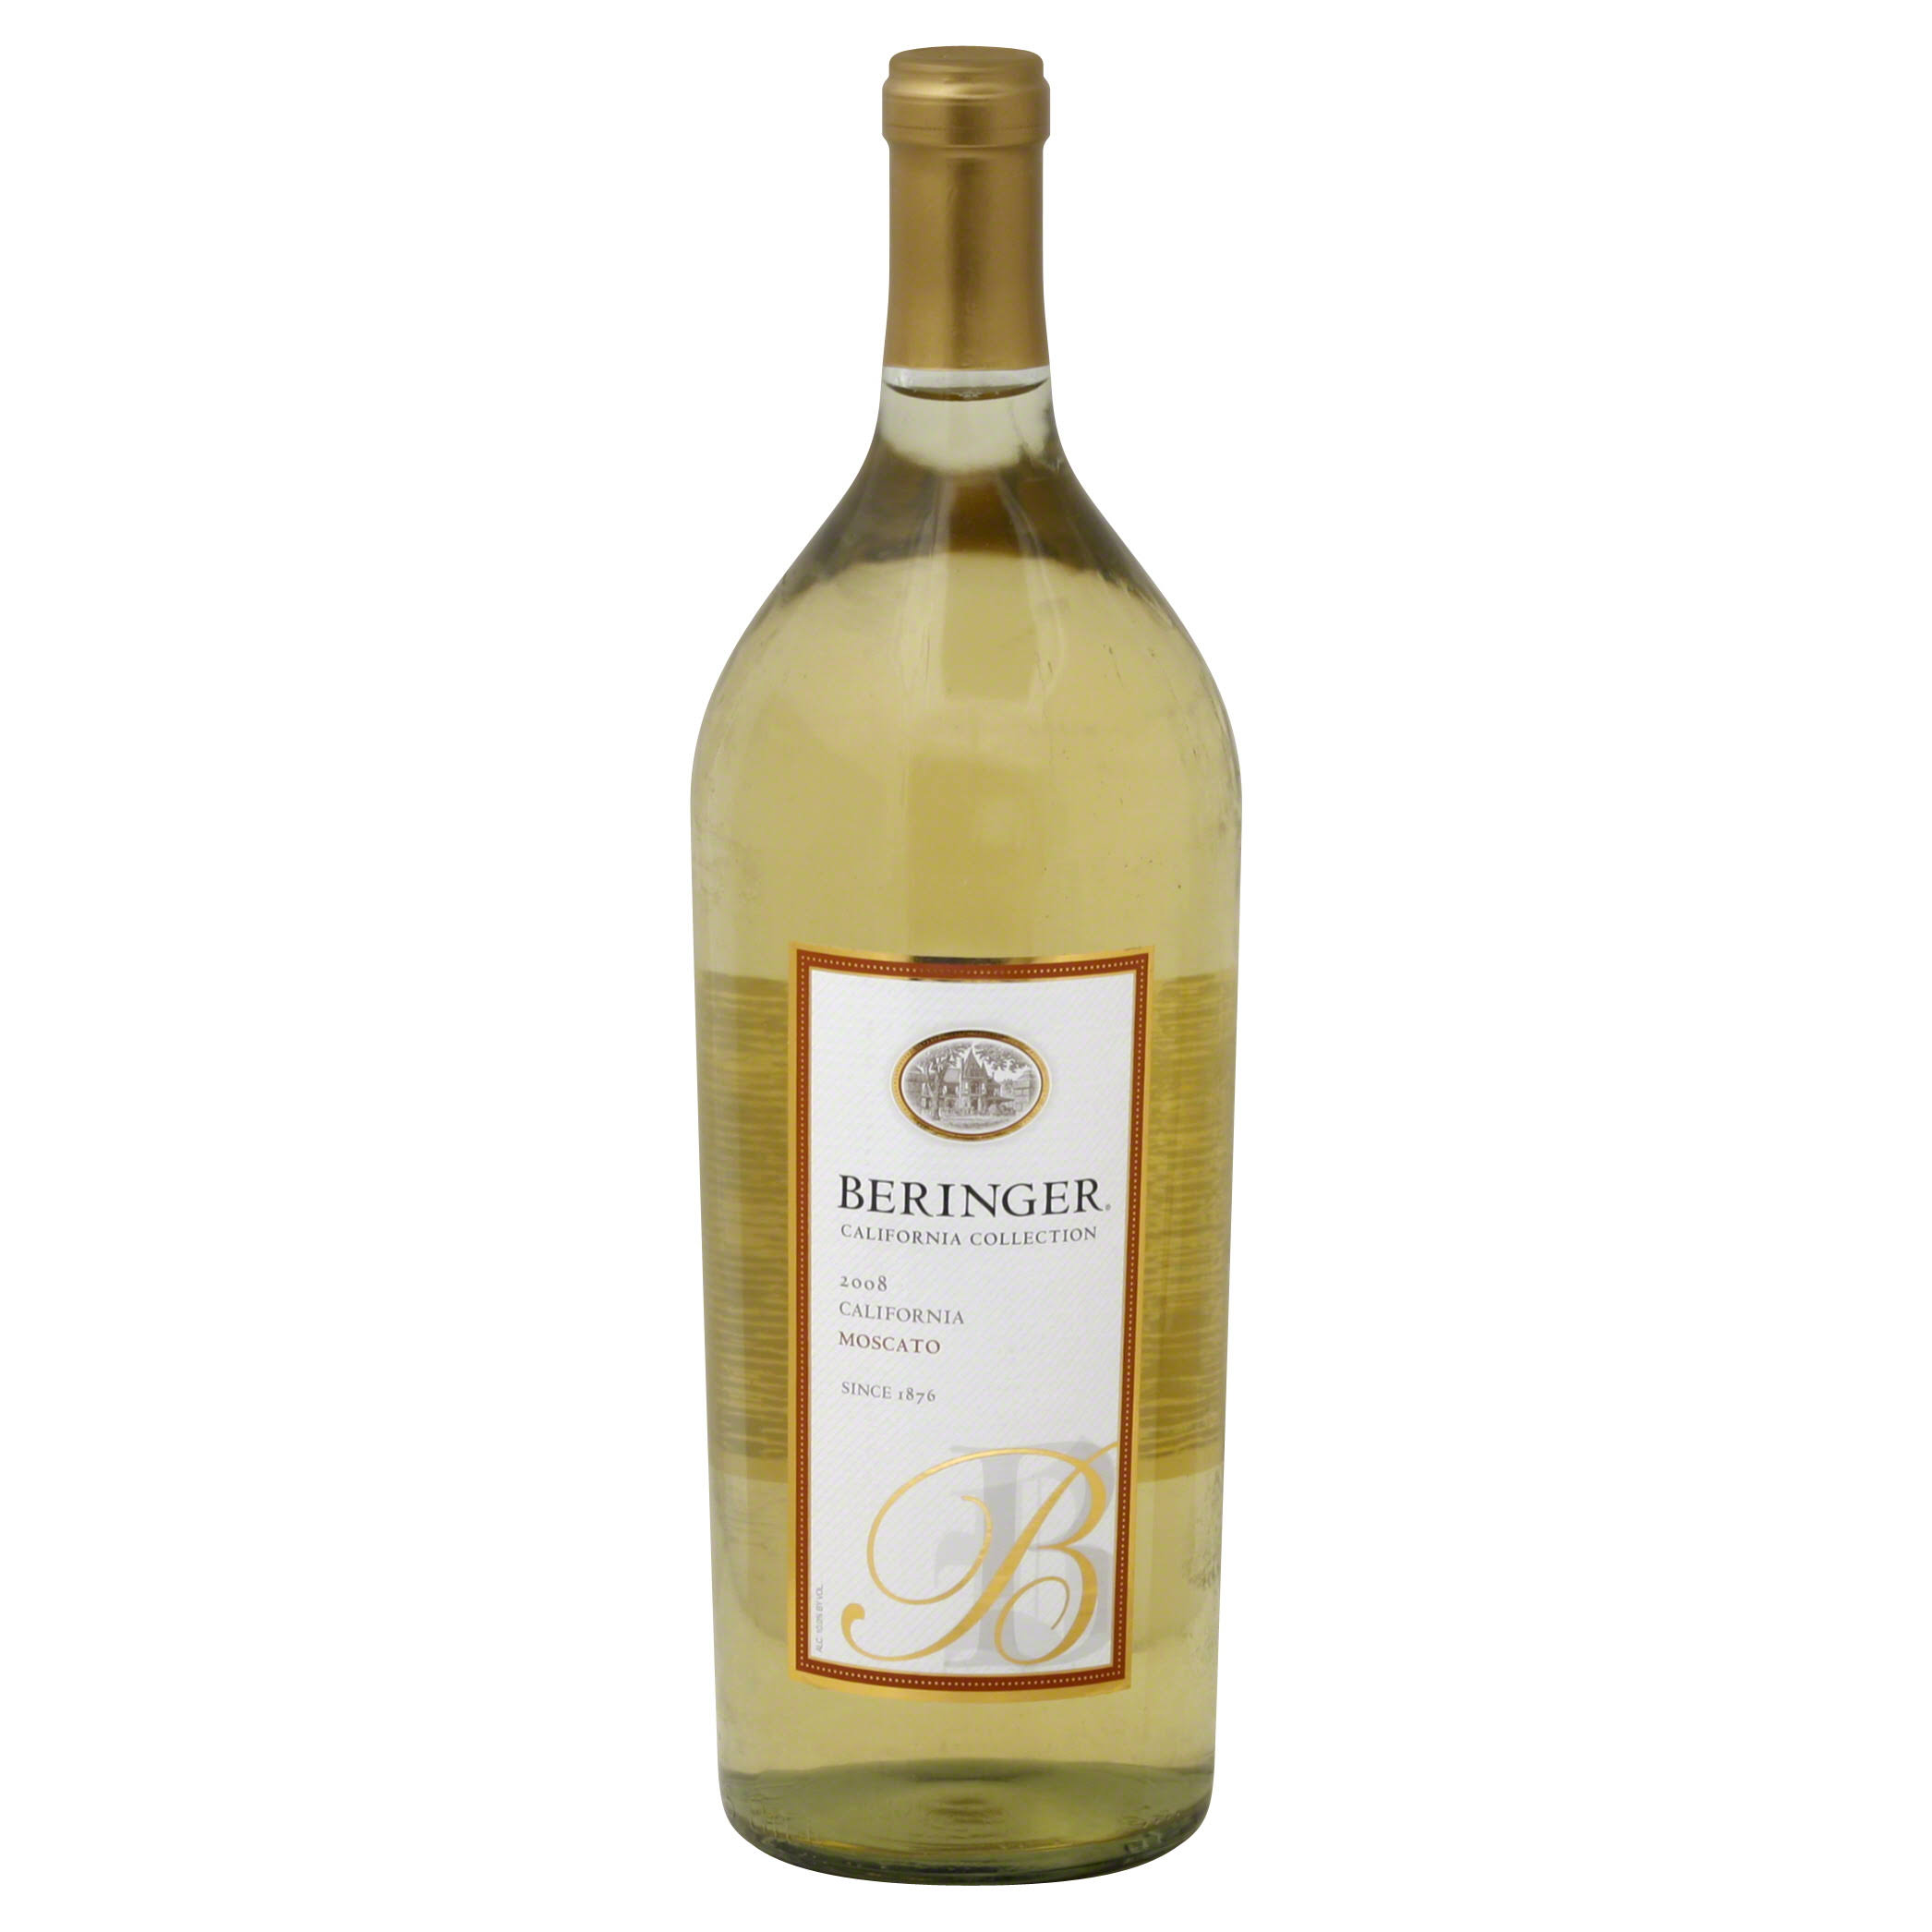 Beringer California Collection Moscato, California, 2008 - 1.5 lt